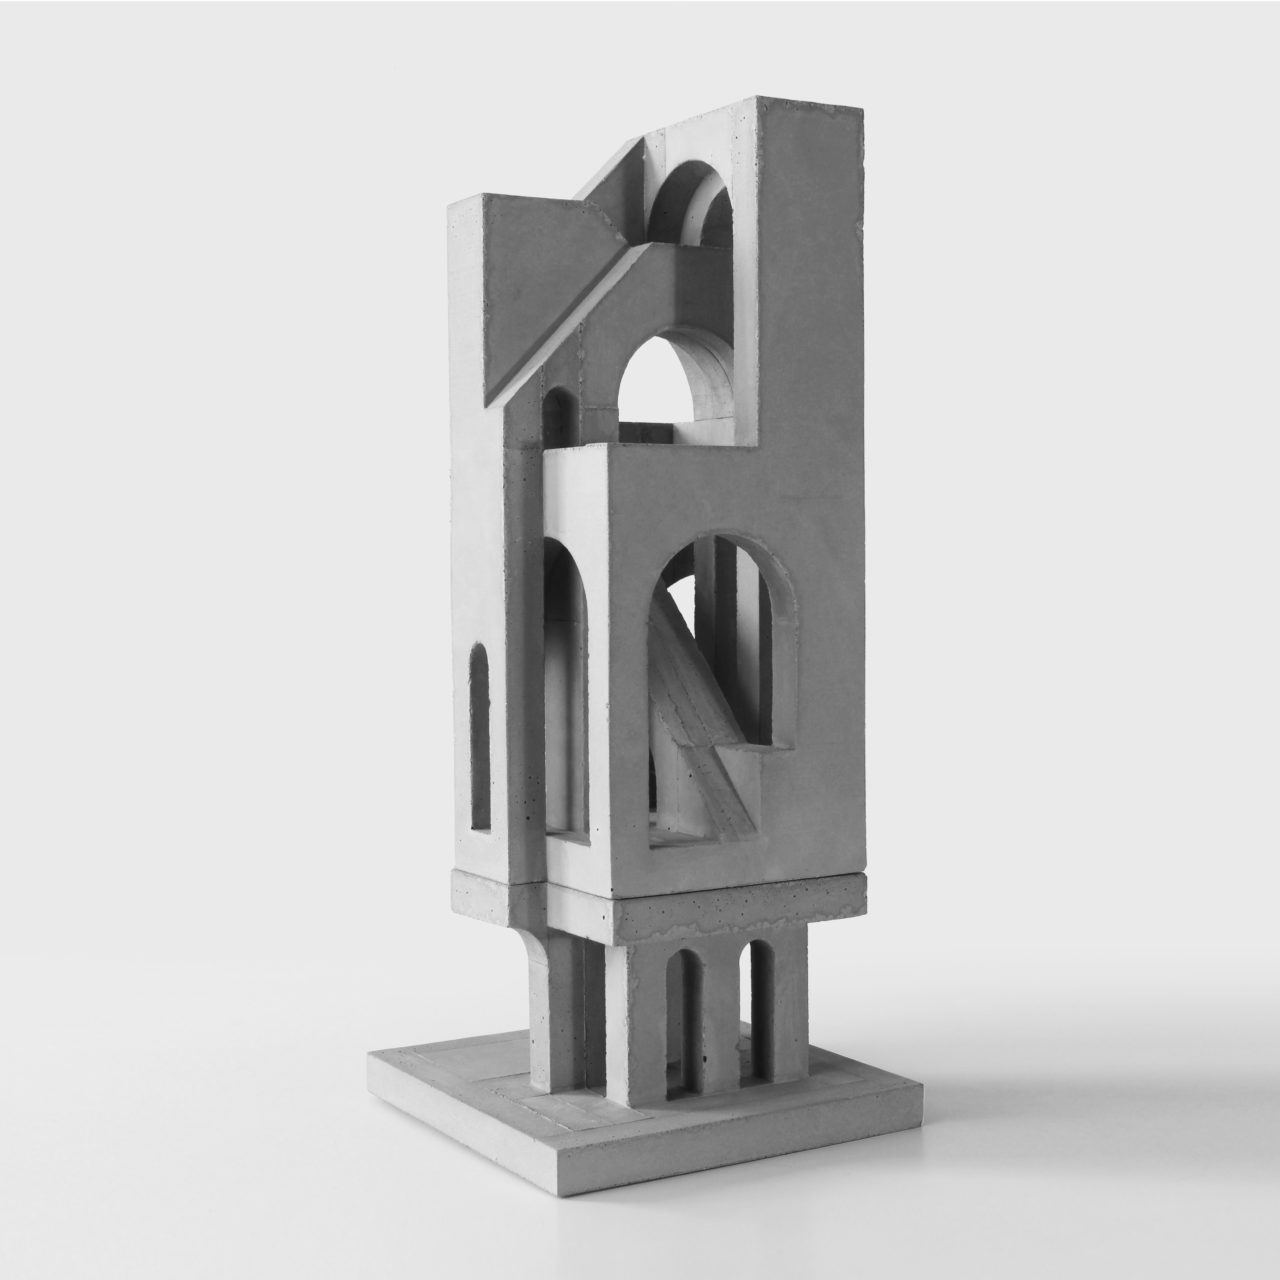 image of a medium sized architectural sculpture